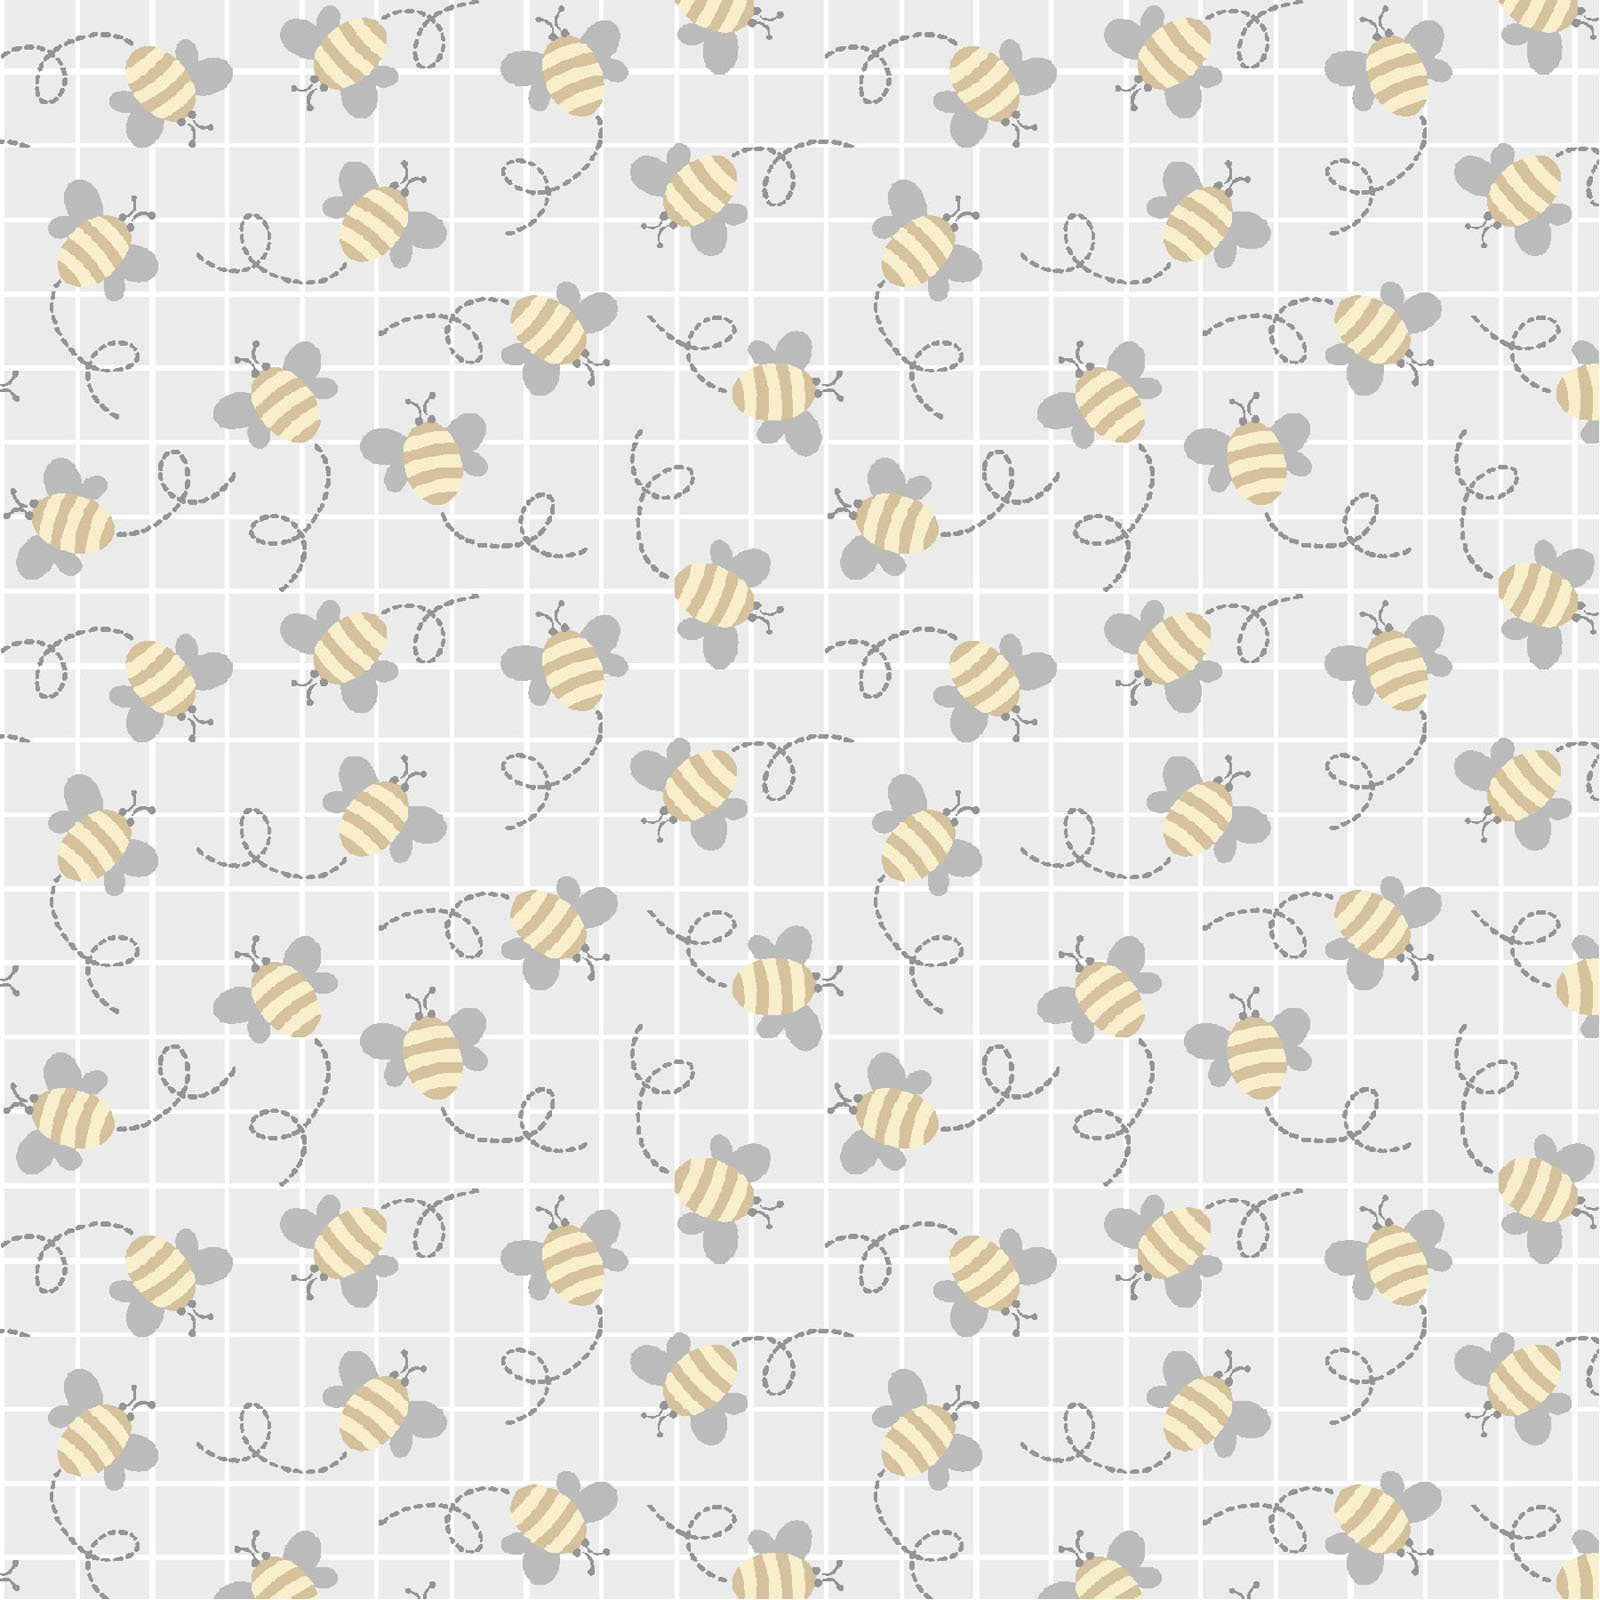 LITC-4295 S - LITTLE CRITTERS BY ROBIN RODERICK BEE GREY